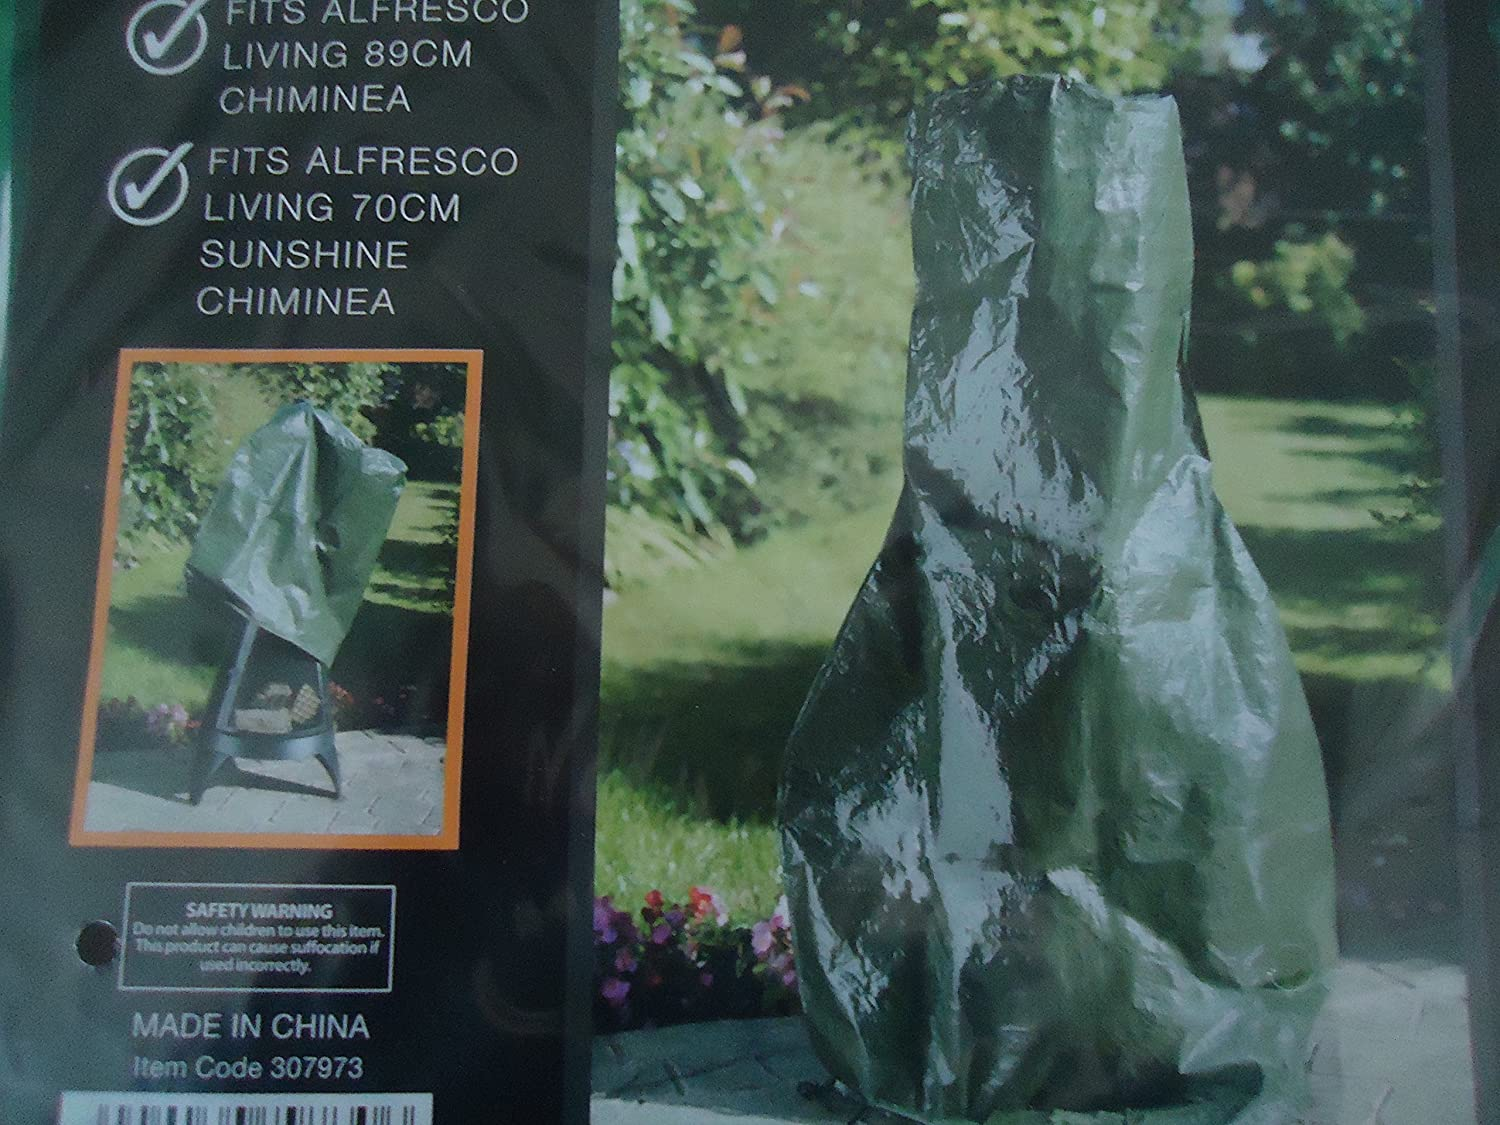 Chiminea Cover 91cm Height - Strong & Durable - BRAND NEW / PACKAGED - FREE DELIVERY. Alfresco Living